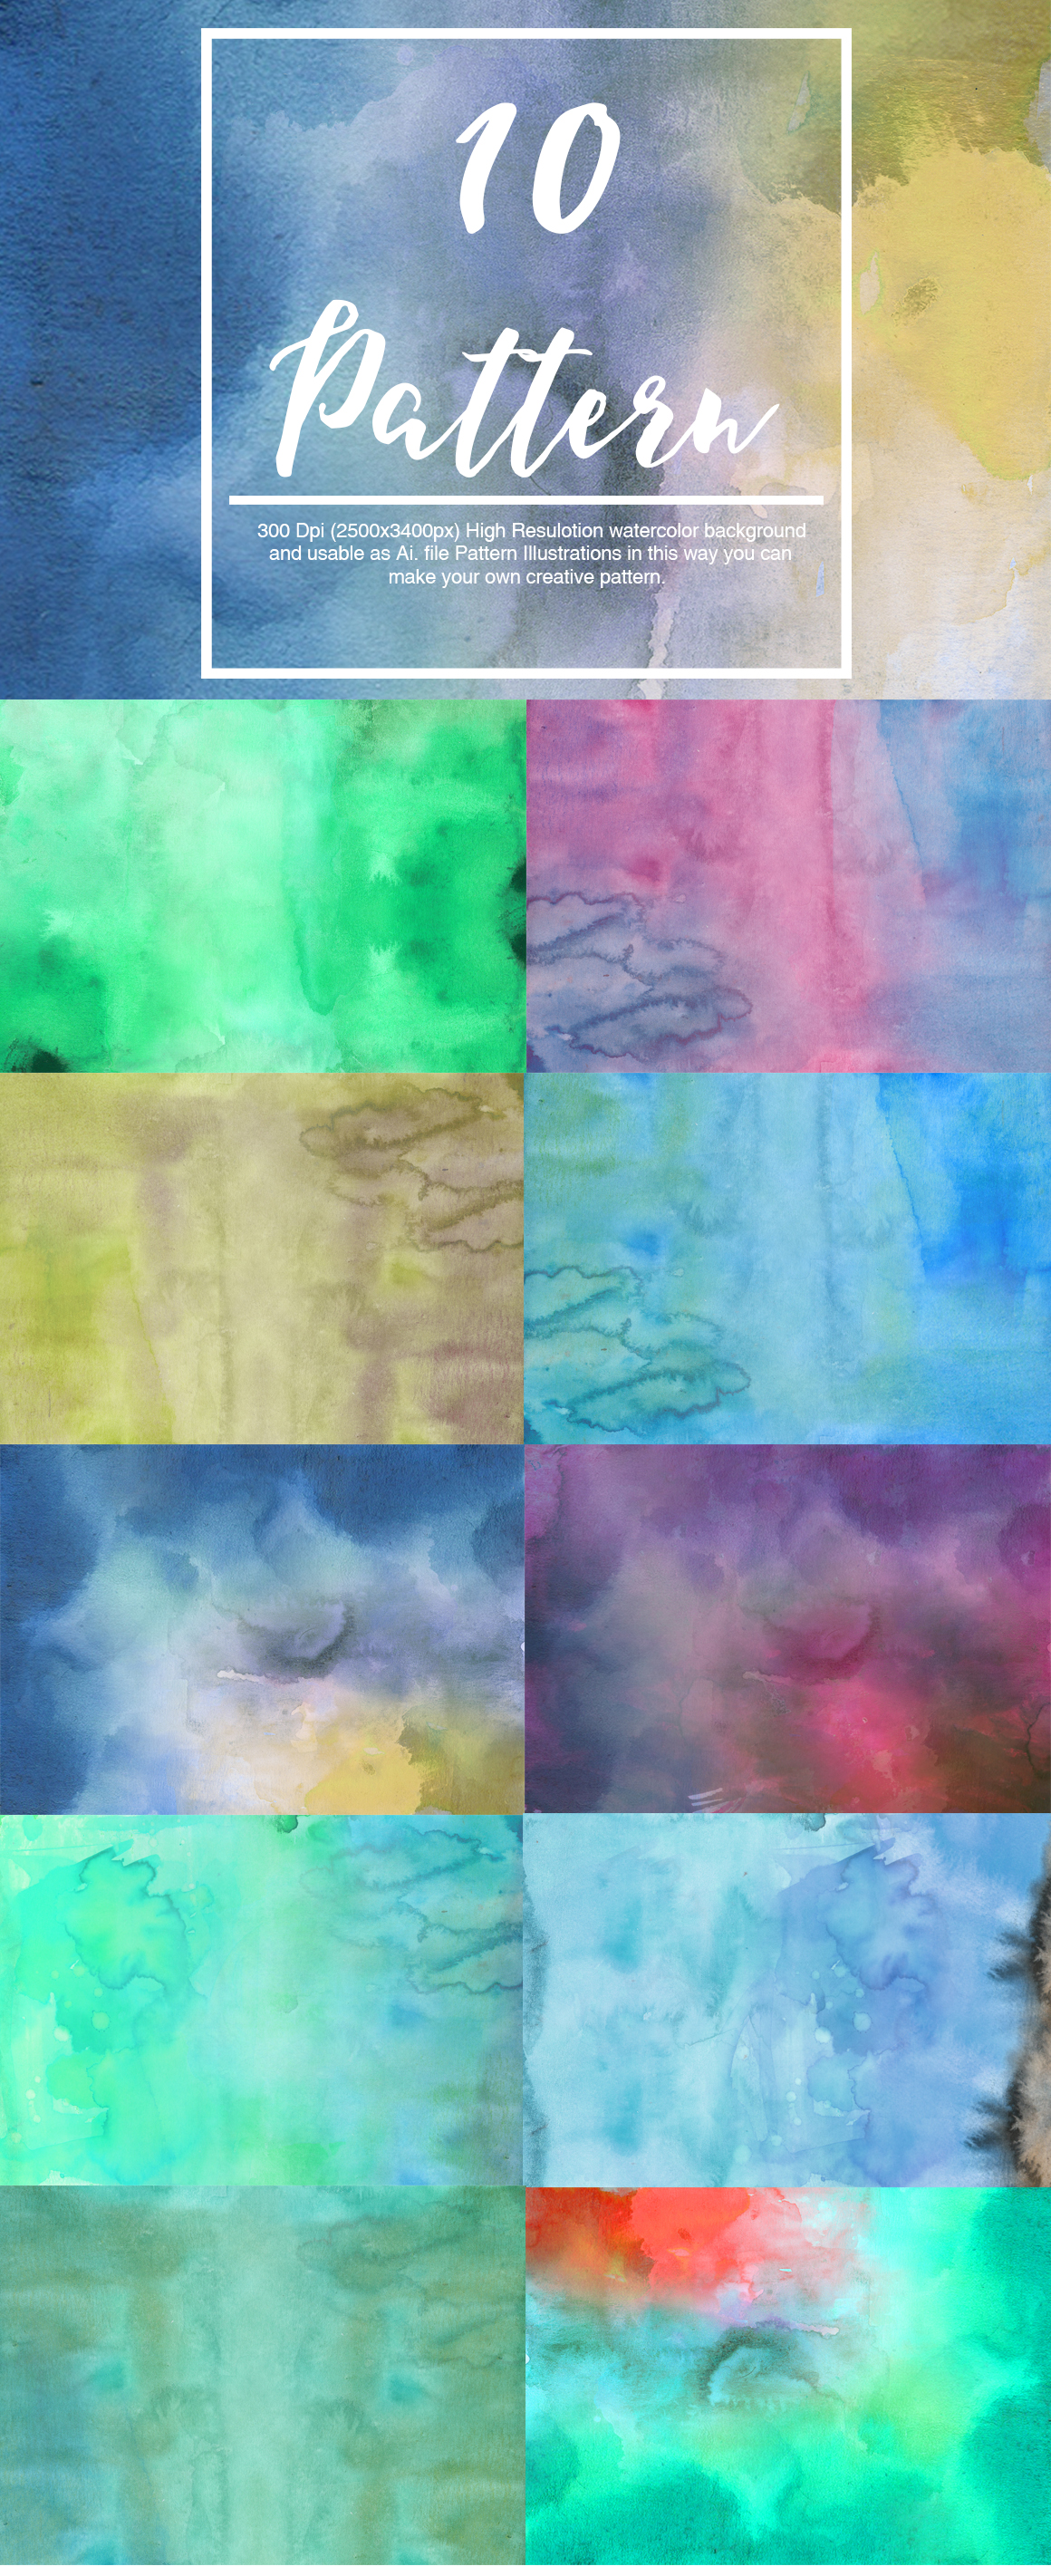 Watercolor Pack example image 3